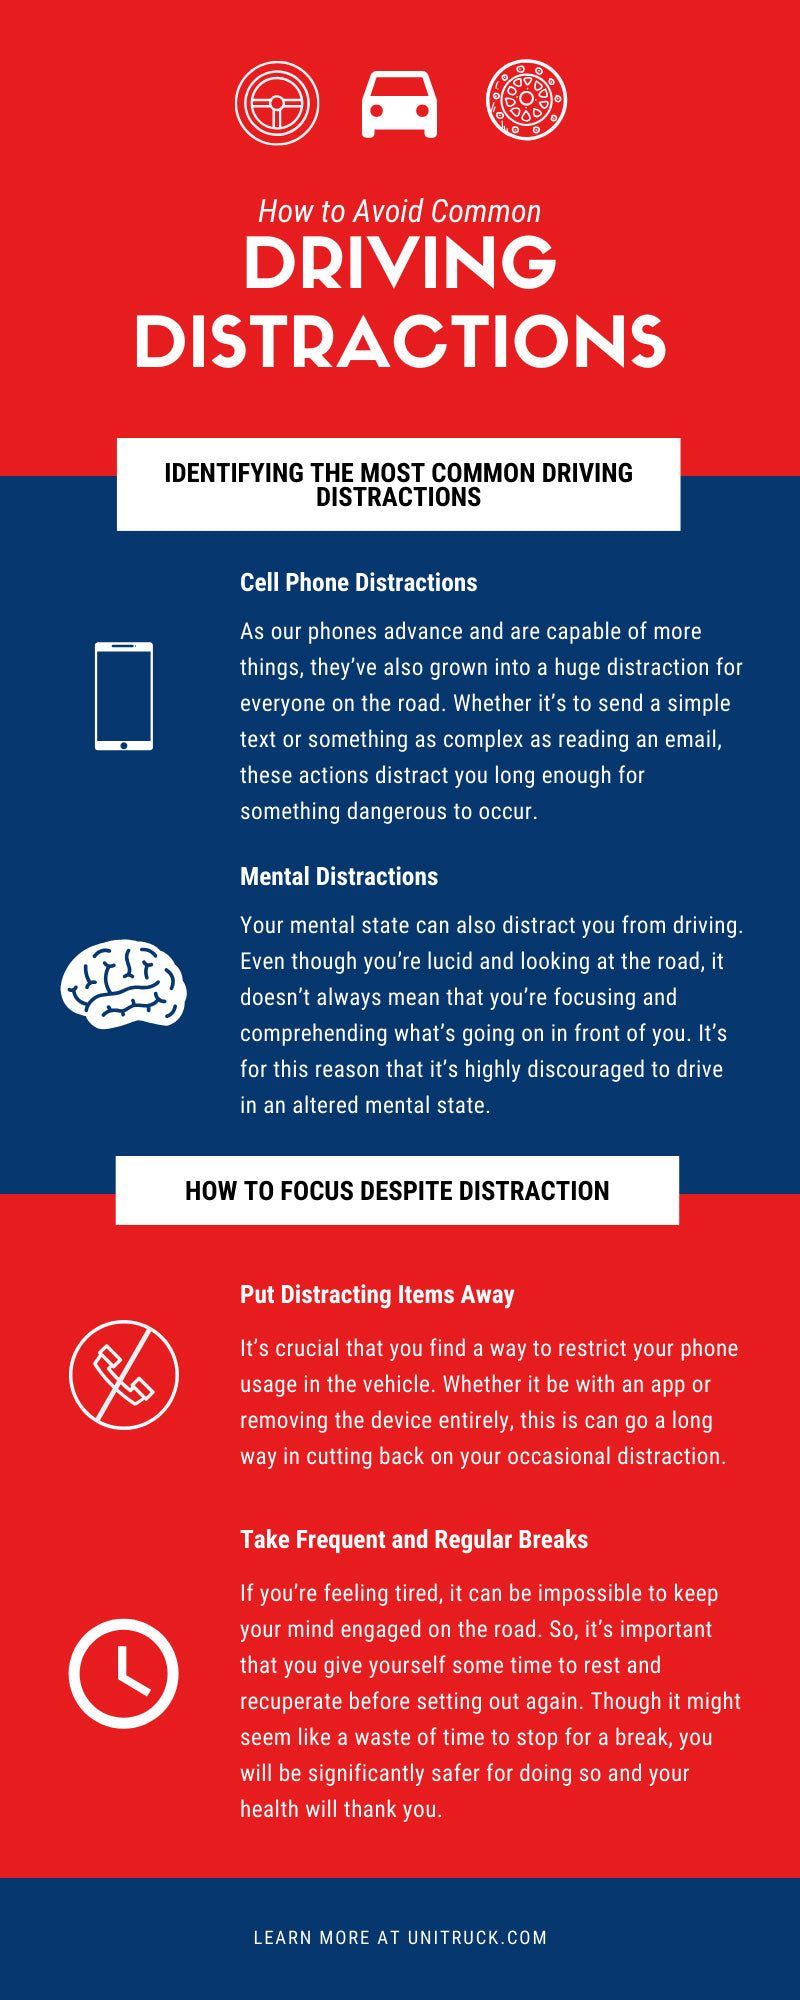 How to Avoid Common Driving Distractions infographic